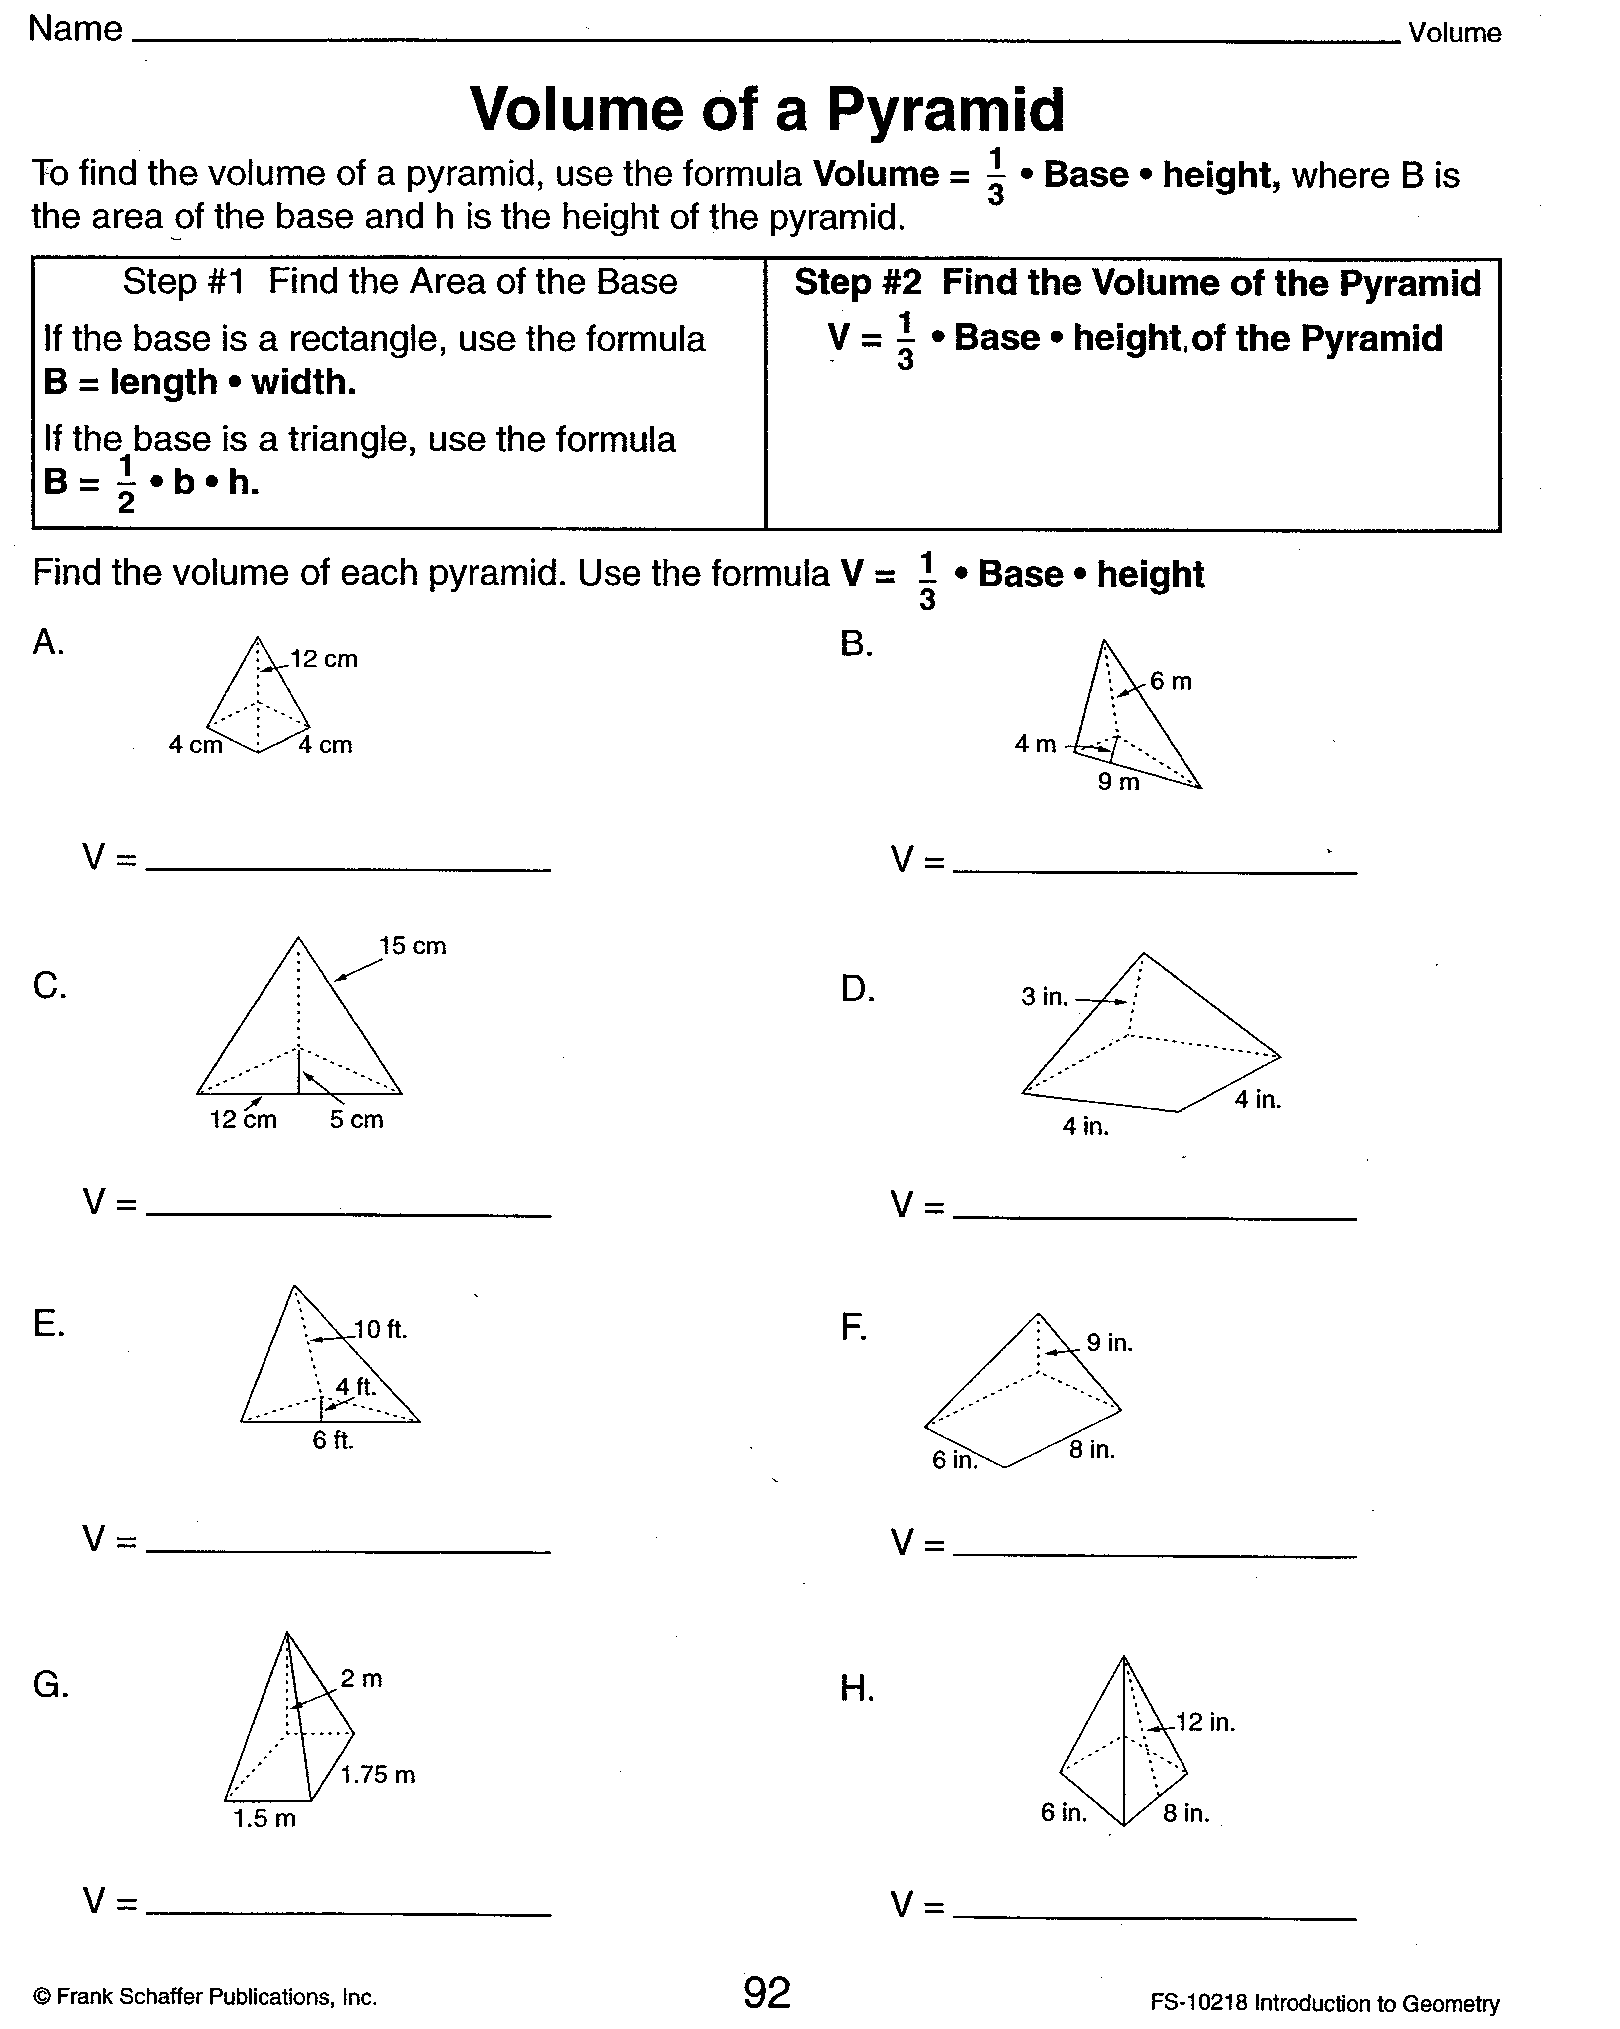 Worksheet Volume Of A Pyramid